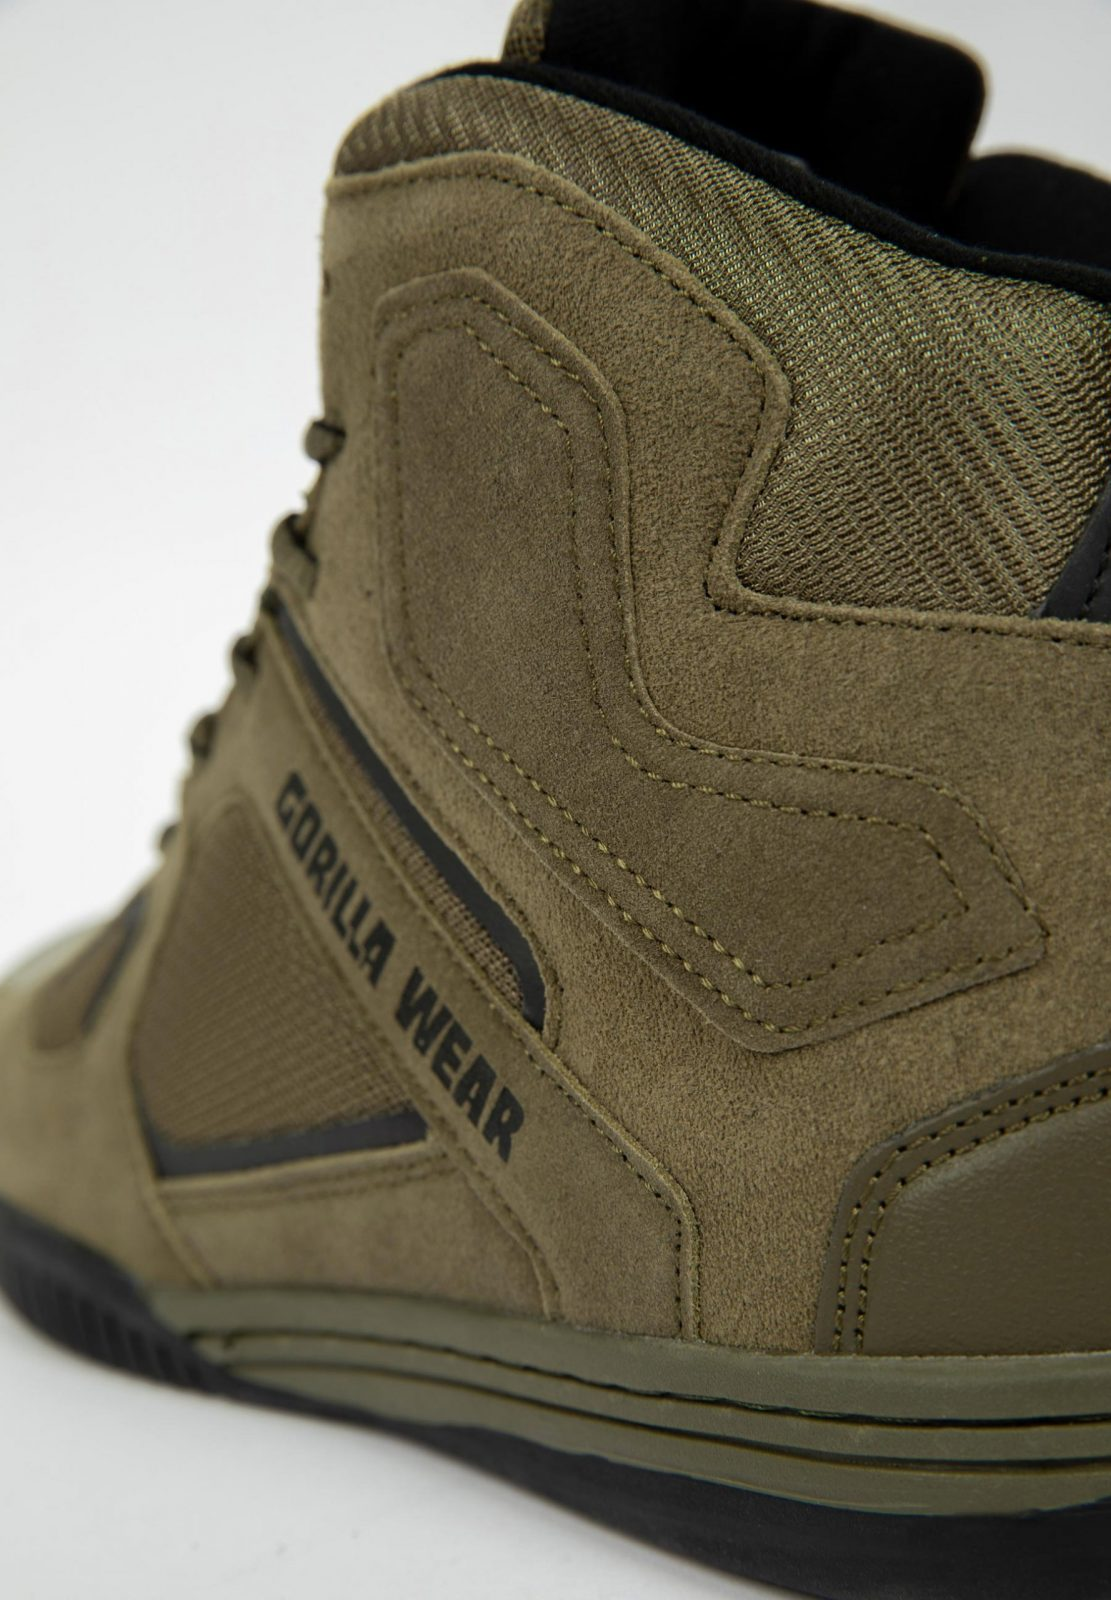 90009409-troy-high-tops-army-green-10